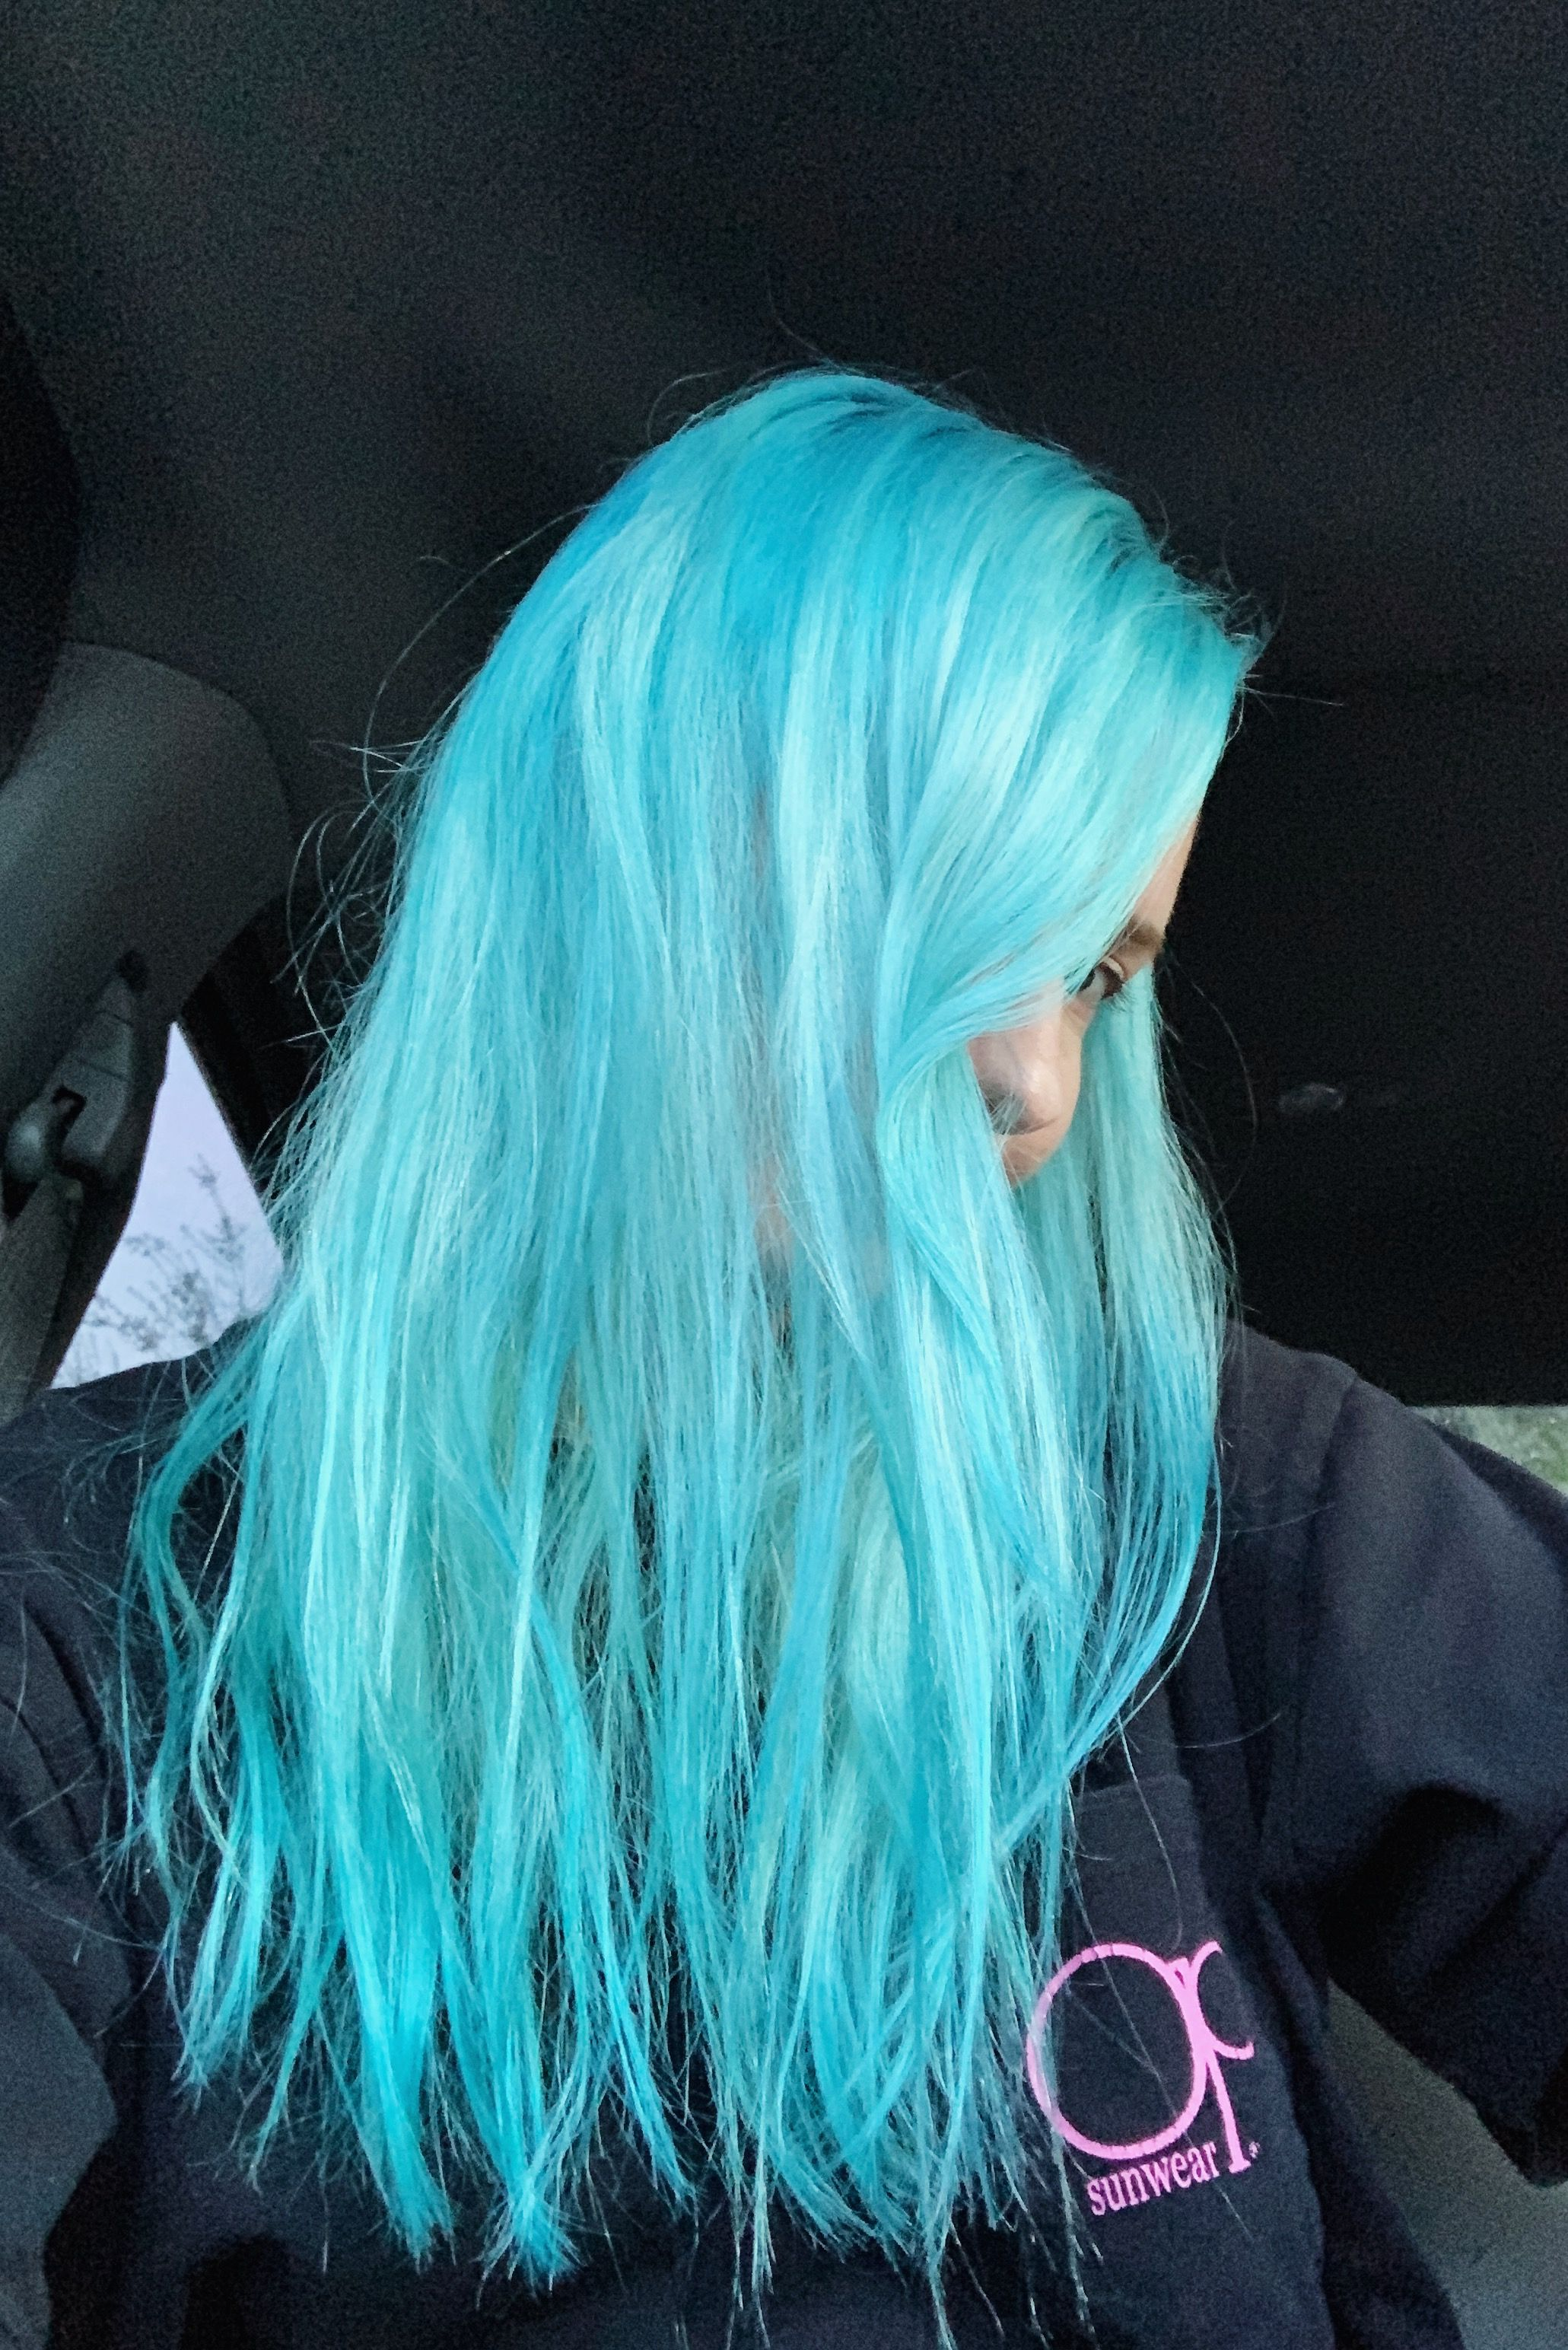 How To Fade Blue Hair Dye Quickly Without Bleach Dyed Hair Blue Faded Blue Hair Turquoise Hair